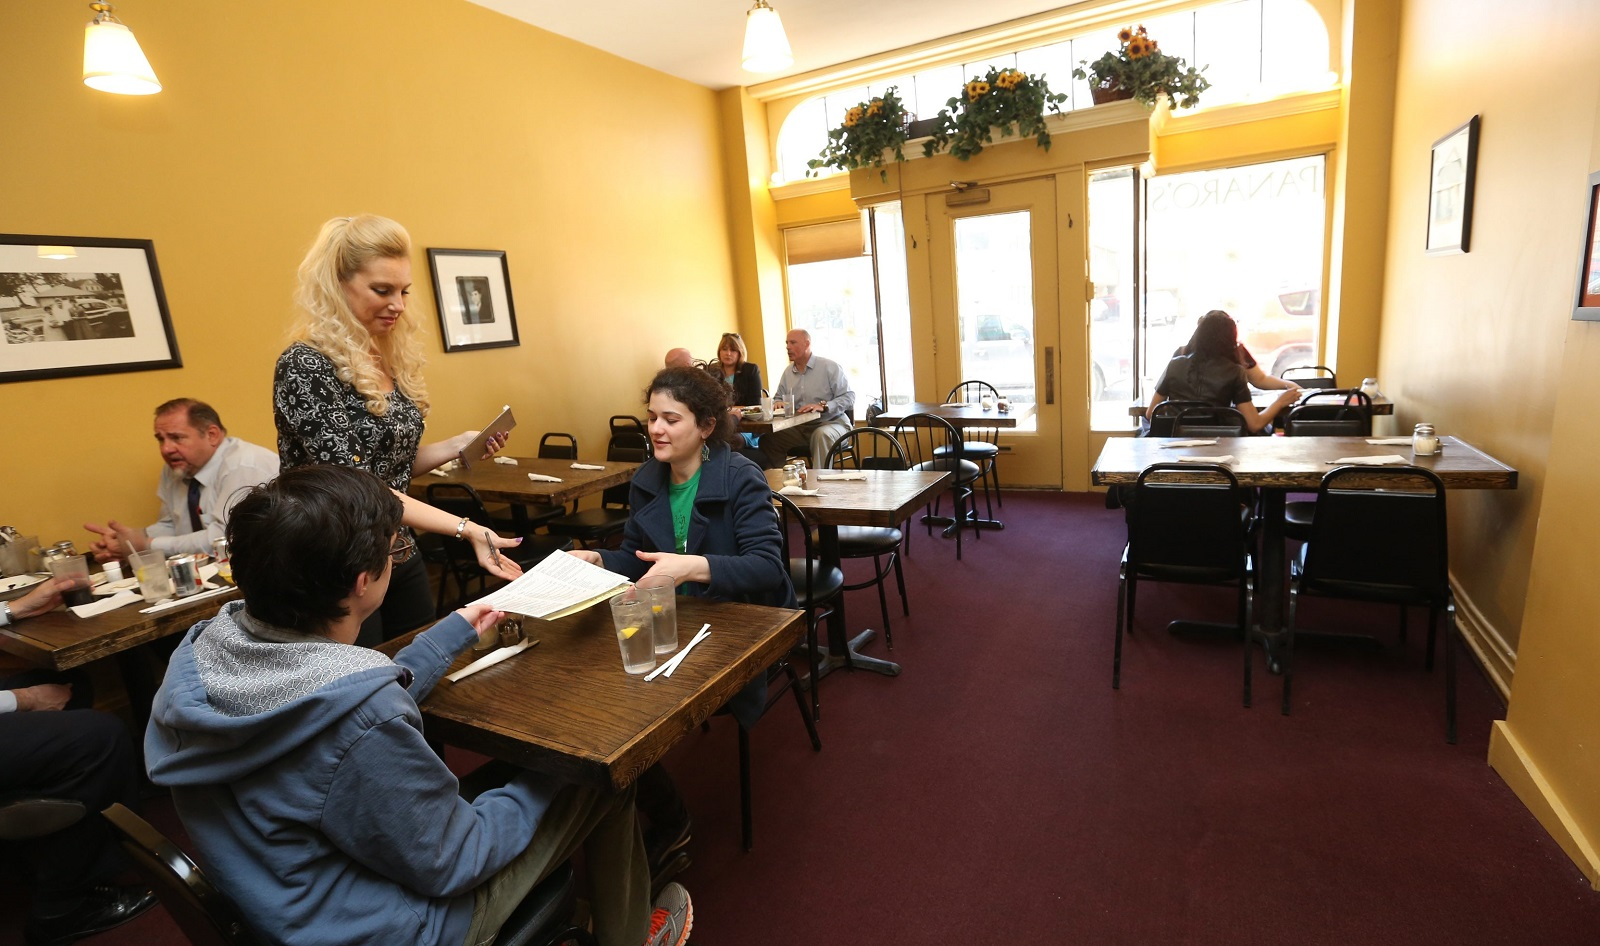 Lynn Panaro takes the order from Blaine Lapin, left, and Danielle Guttman at Delaware Avenue Italian restaurant Panaro's.  (Sharon Cantillon/Buffalo News)